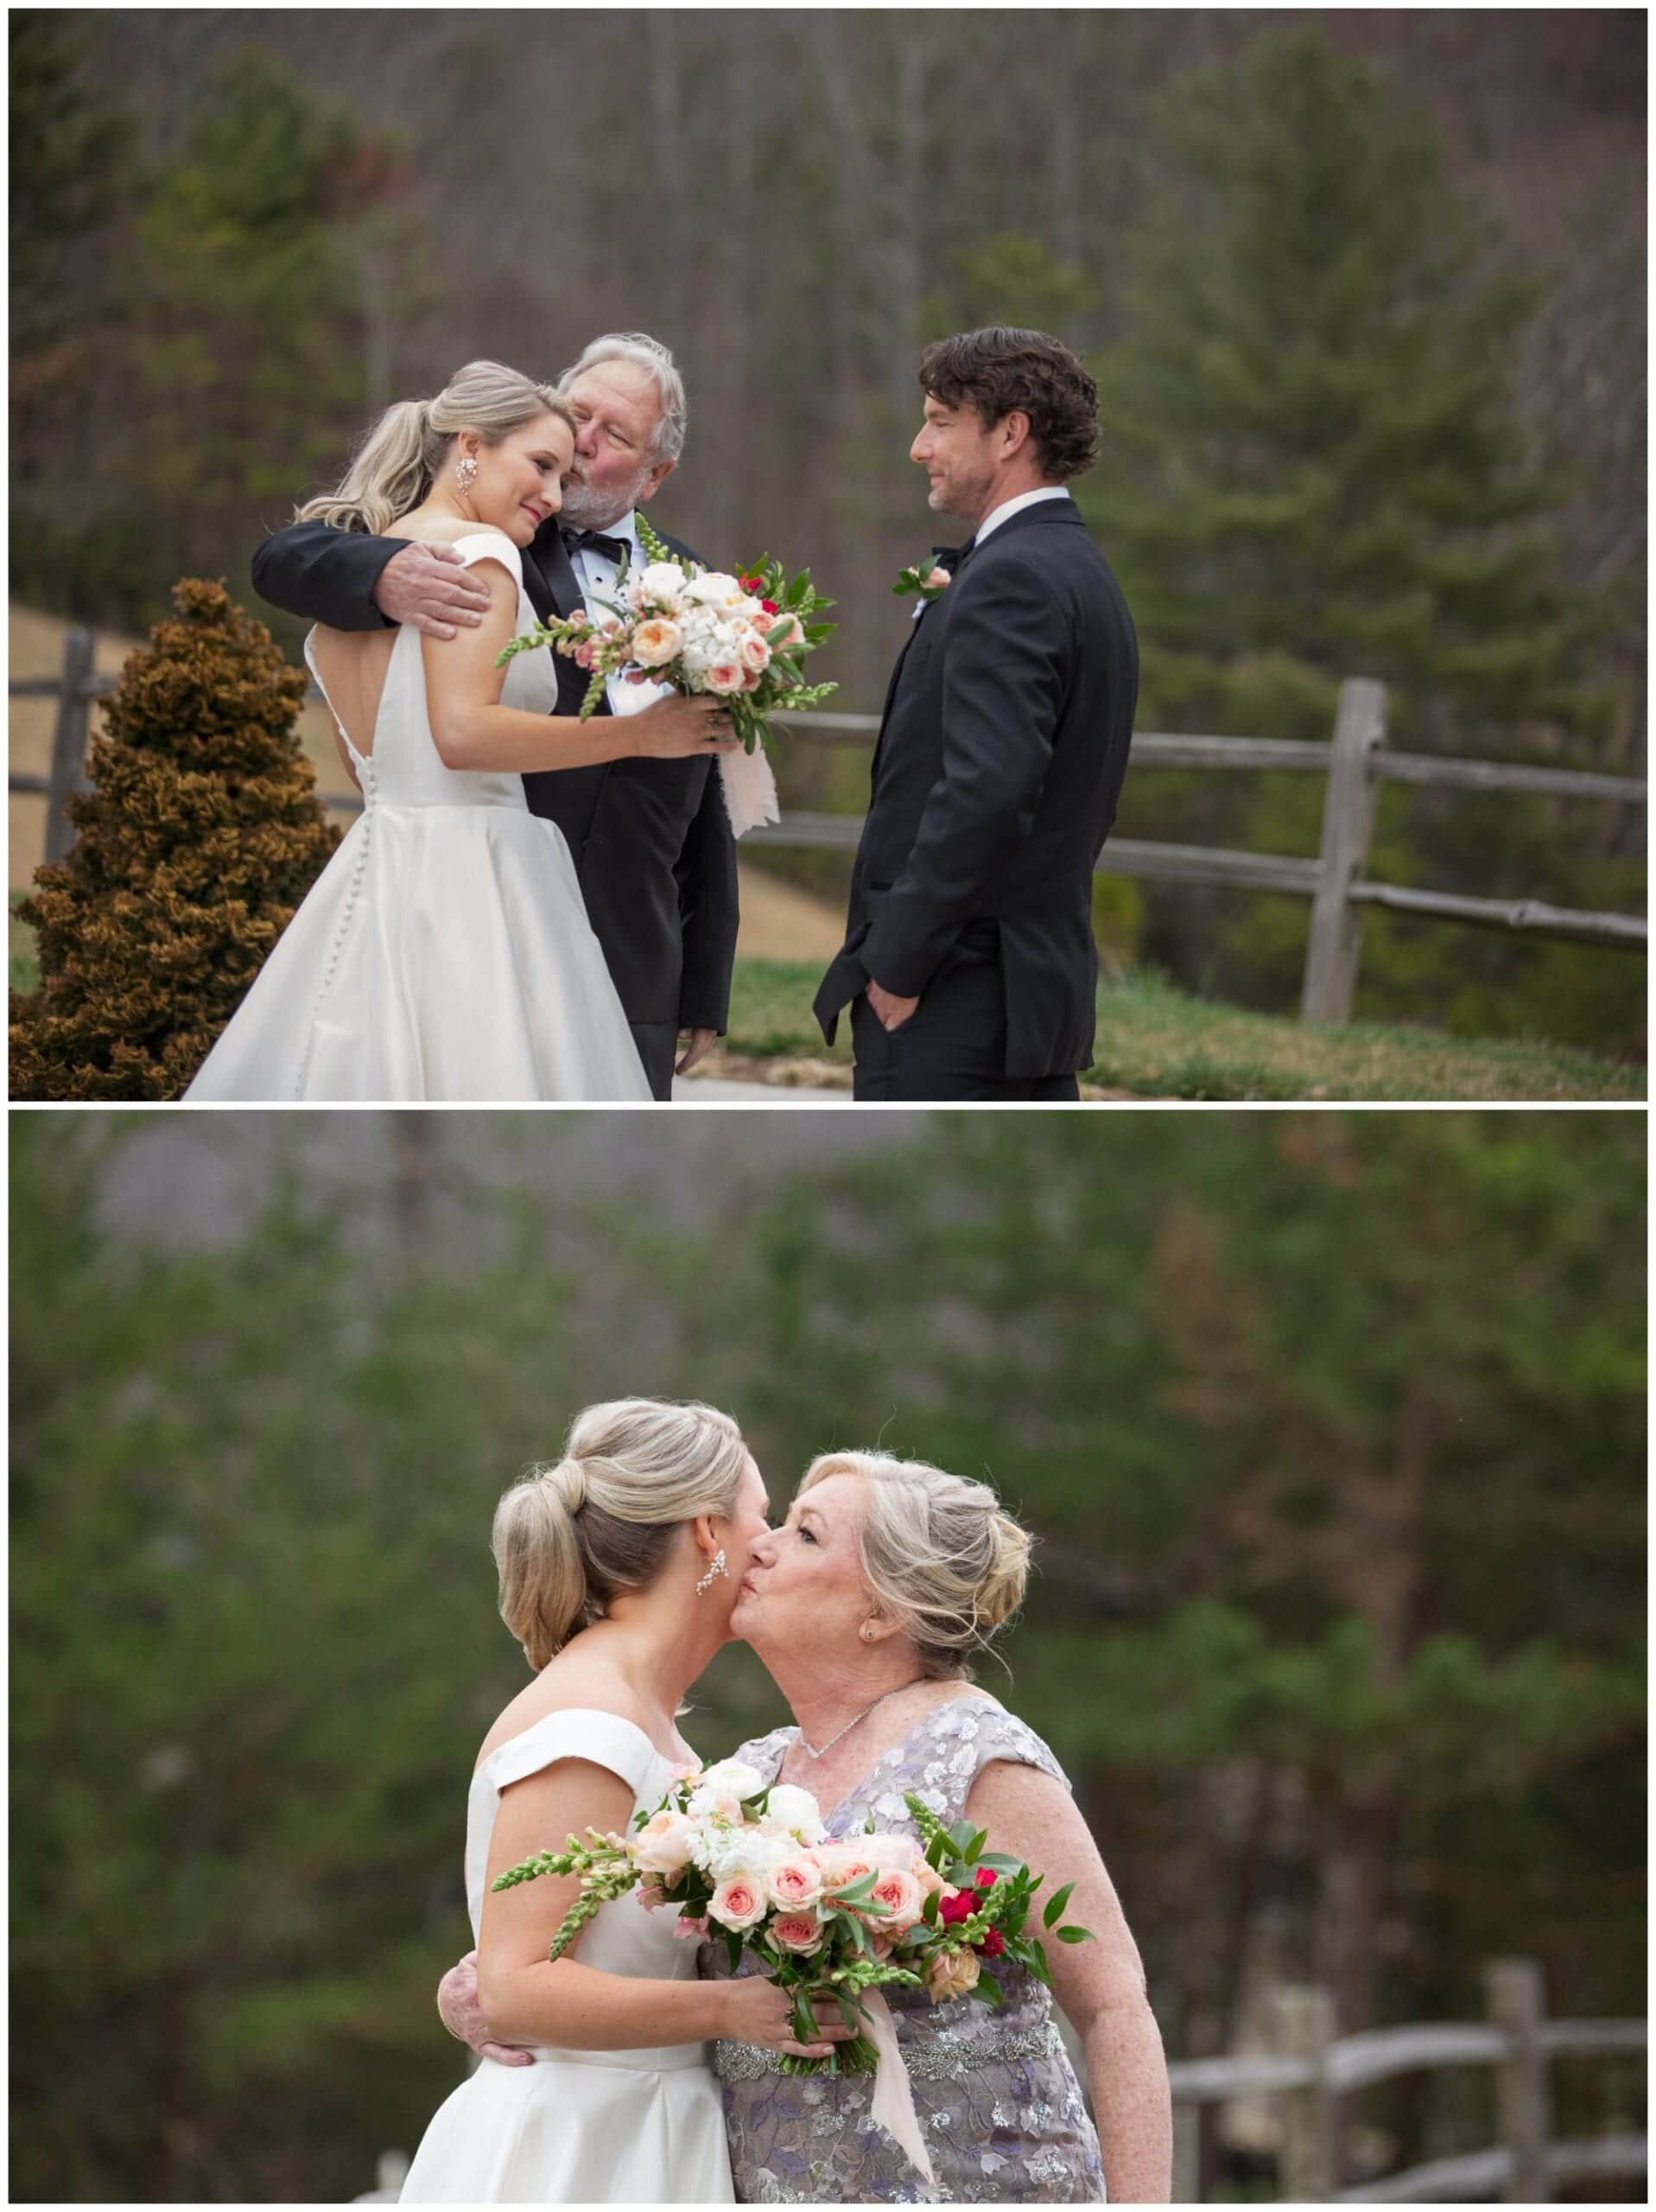 Mom and Dad give daughter a kiss